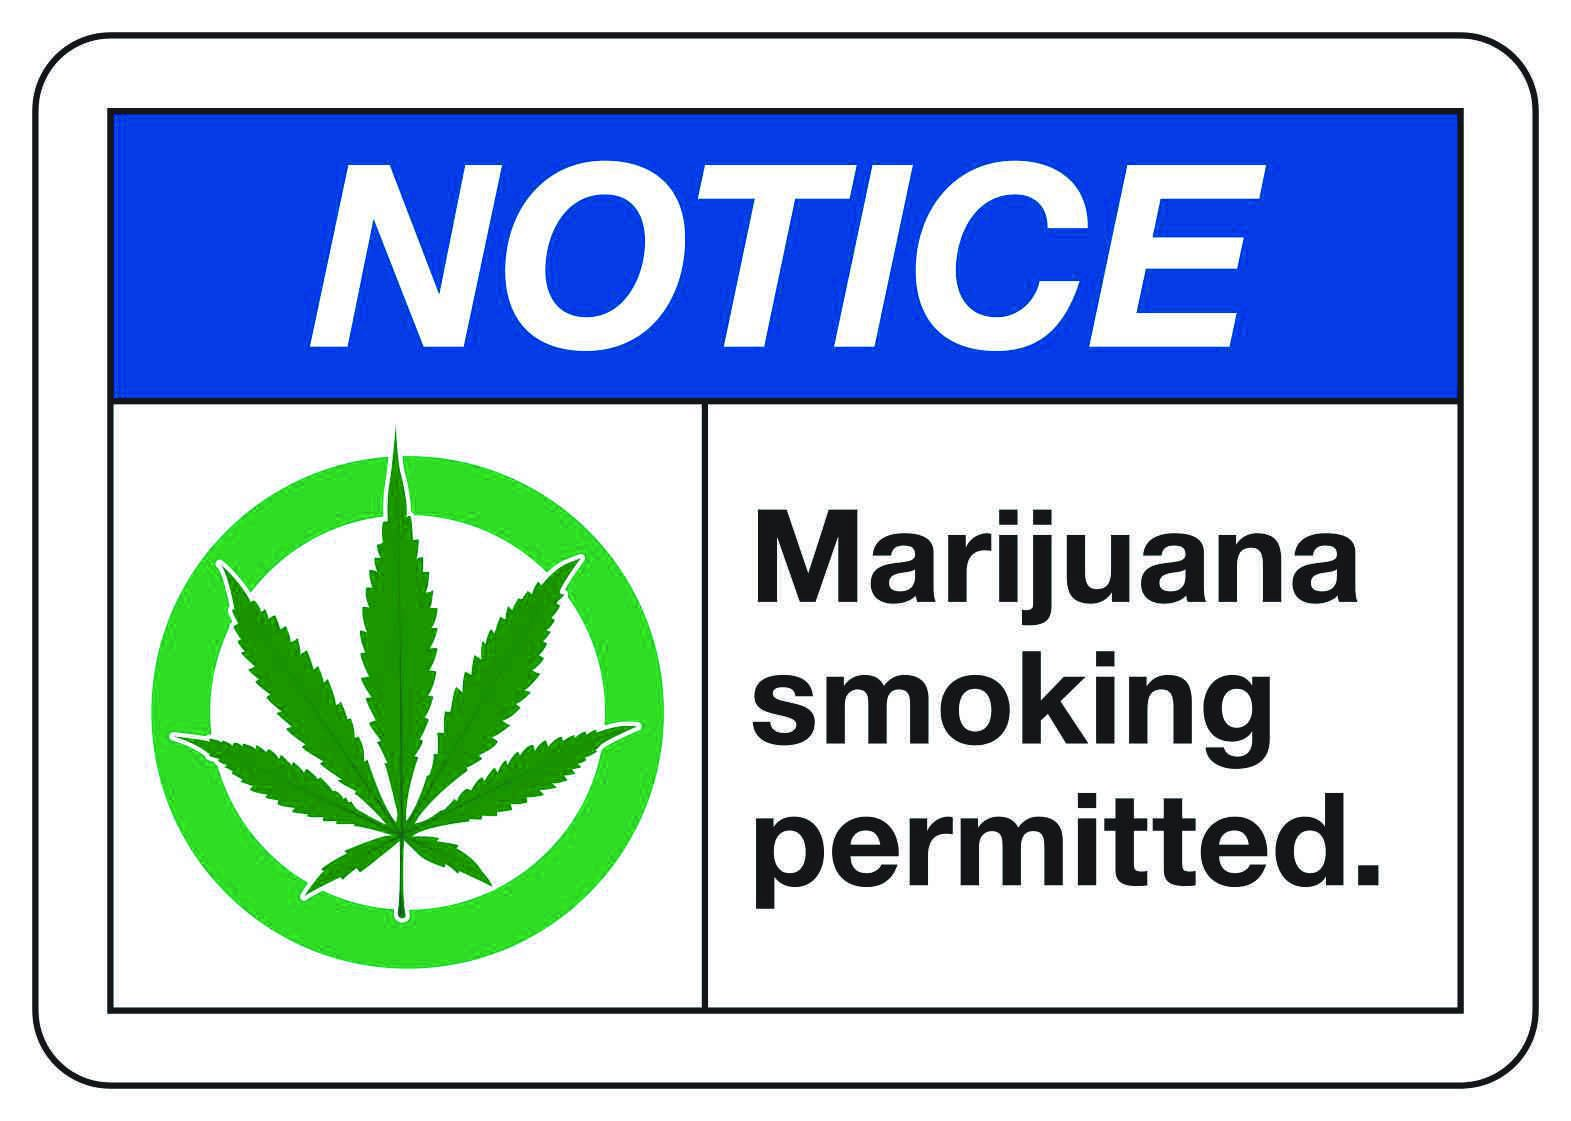 Marijuana Smoking Permitted - Notice Signs